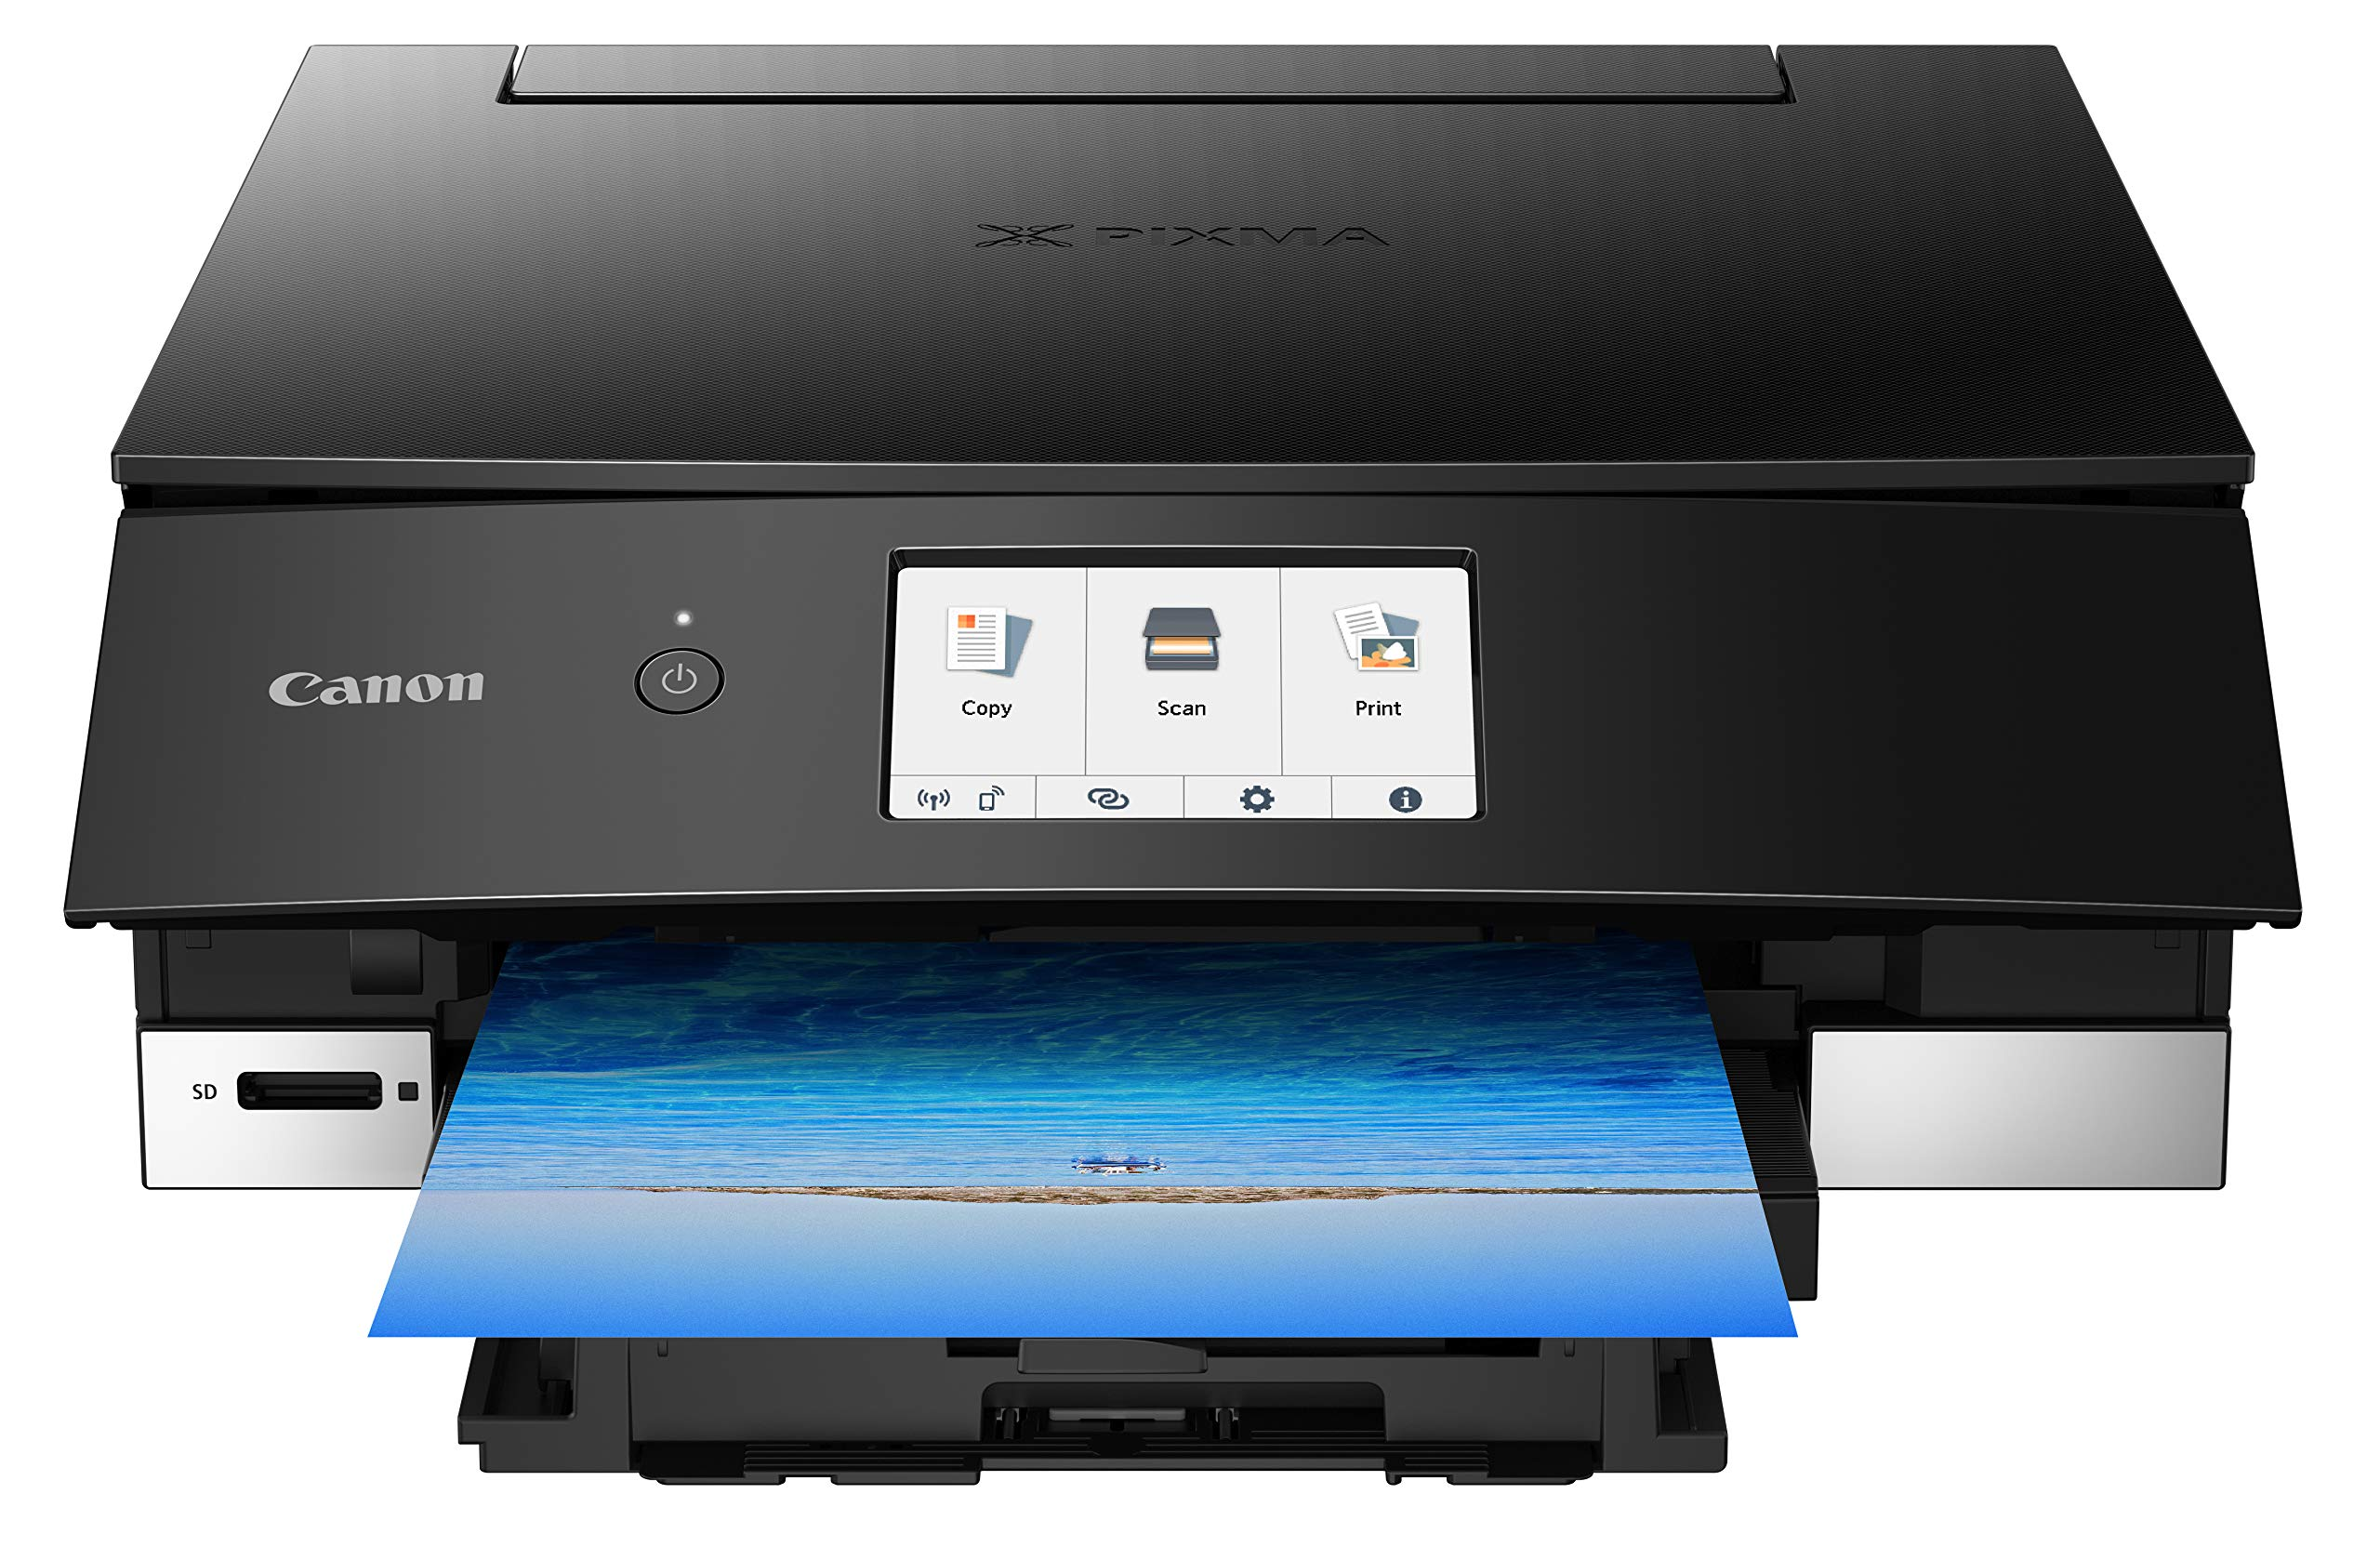 Canon TS8220 Wireless All in One Photo Printer with Scannier and Copier, Mobile Printing, Black by Canon